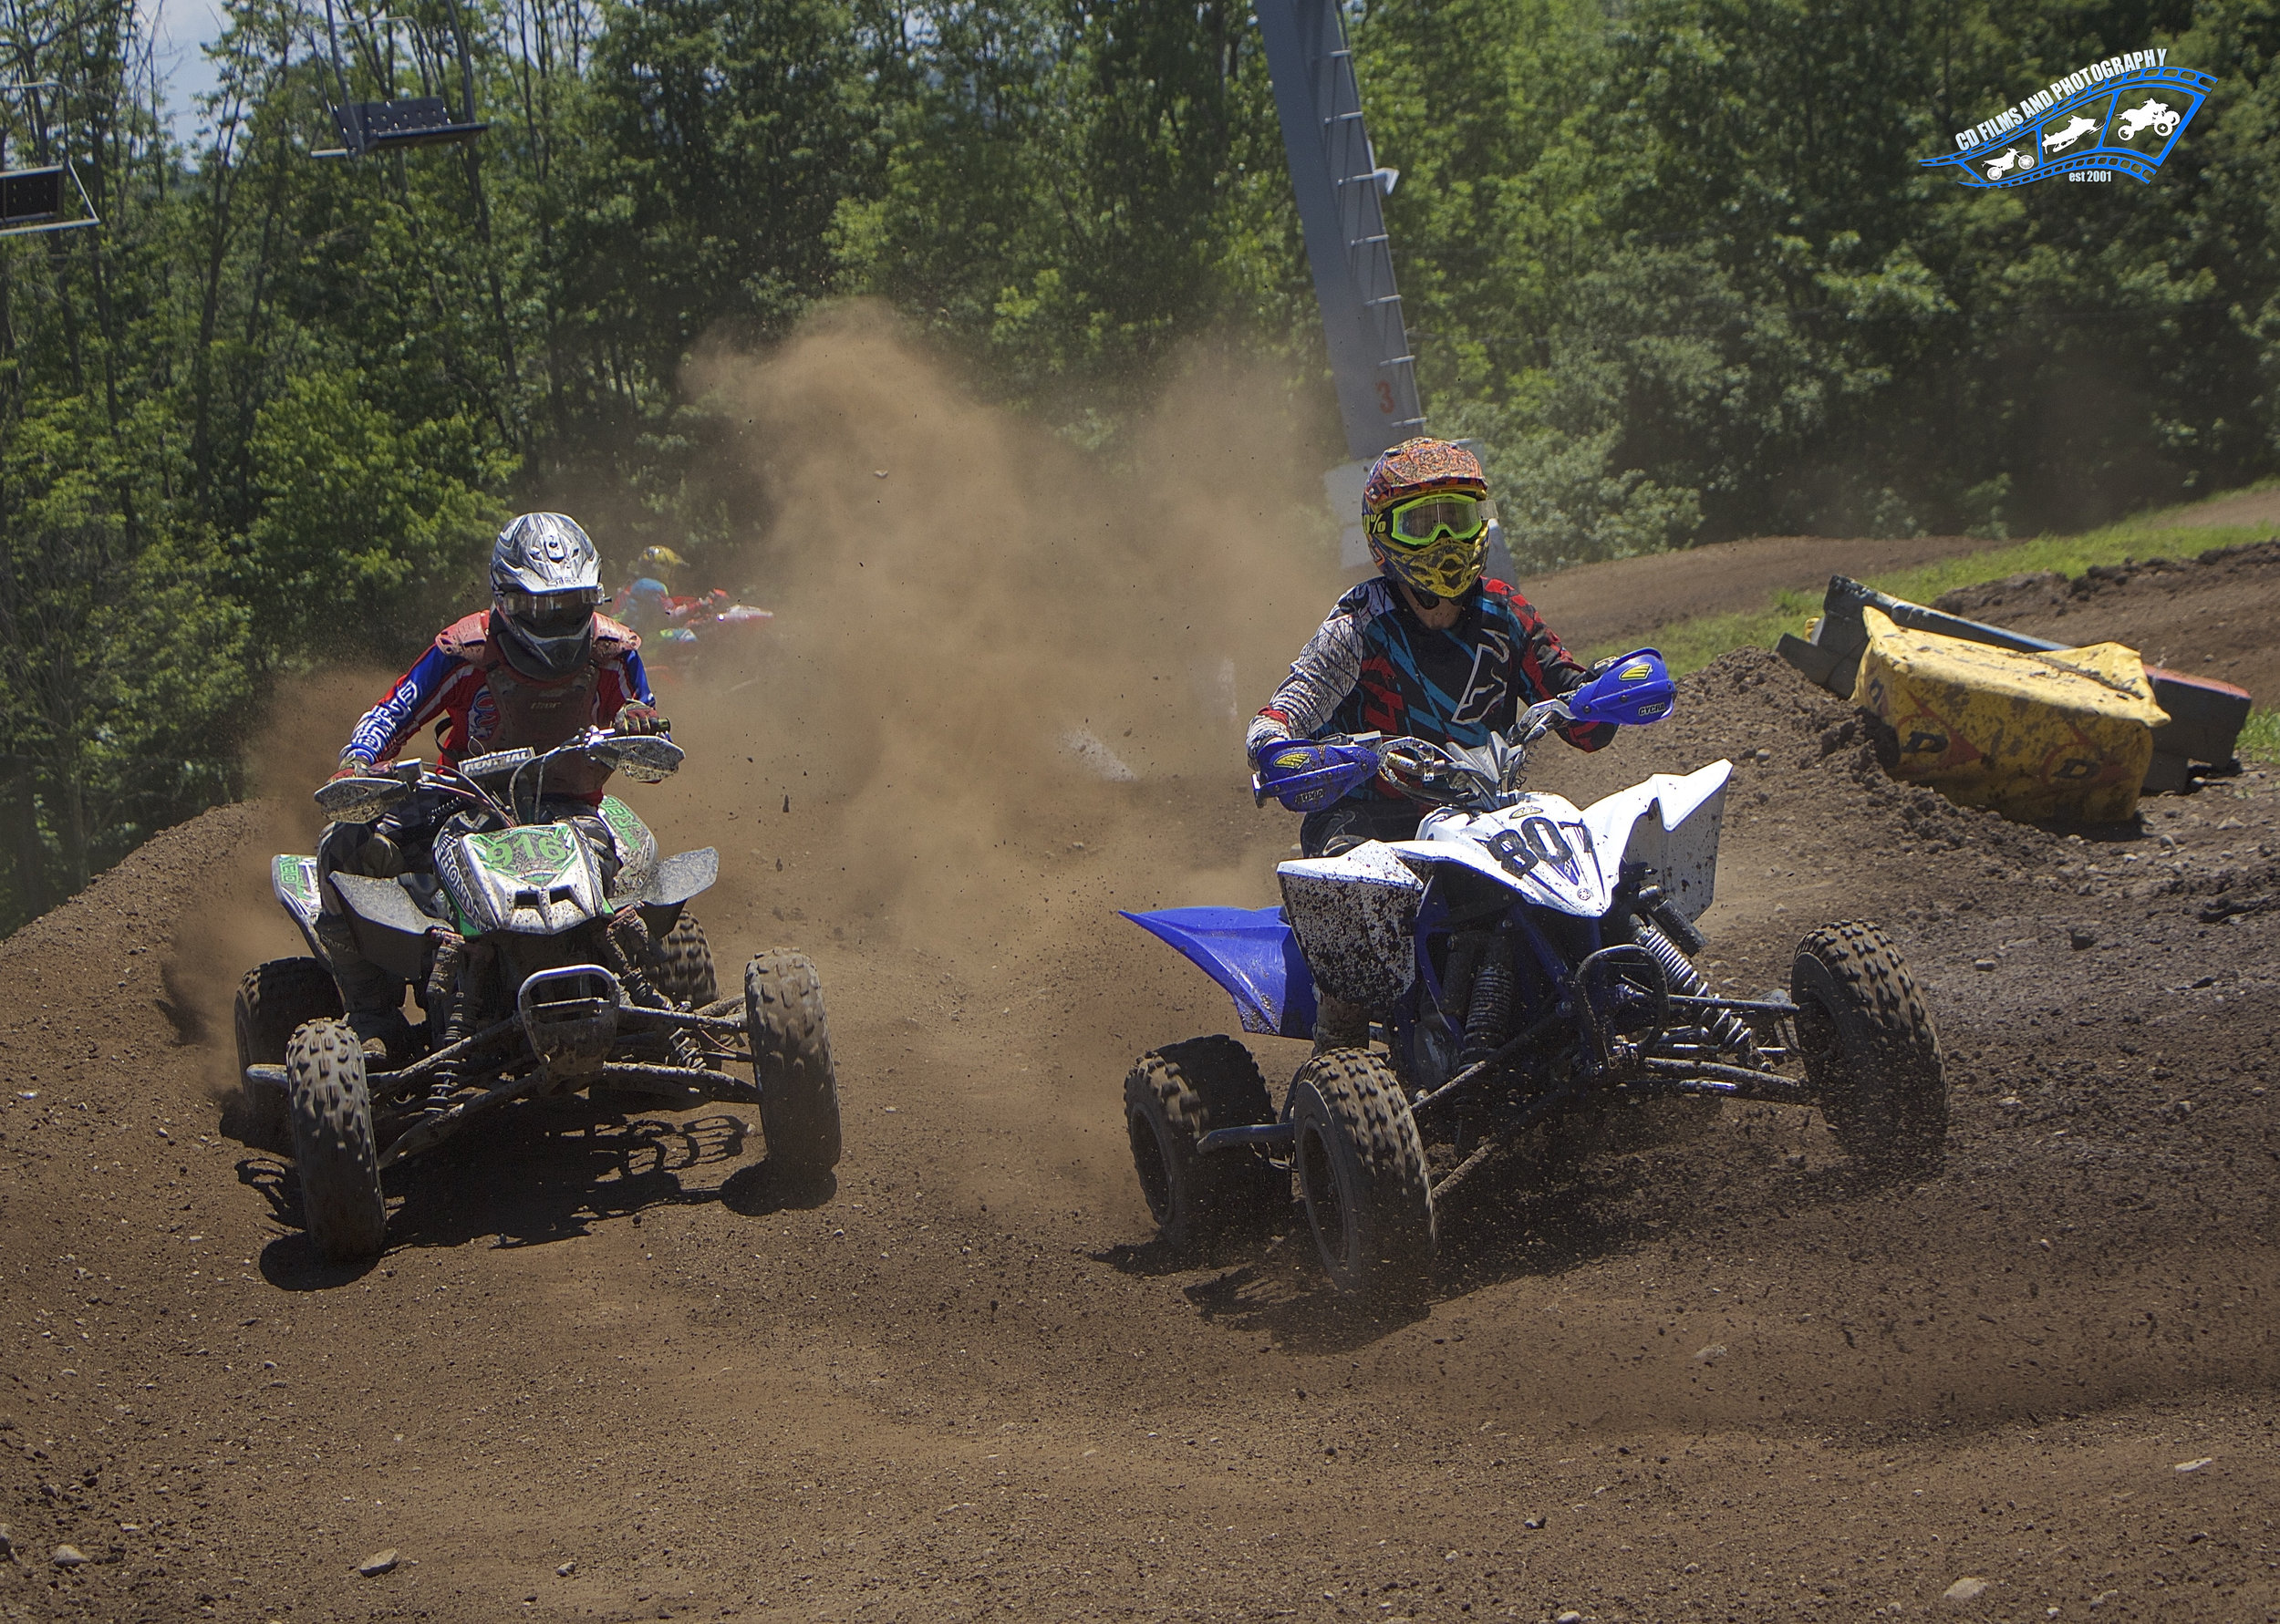 Scott Salls (807) and Billy Shafer (816) in a hard battle for position during last years July 2nd race here at Royal Mountain!